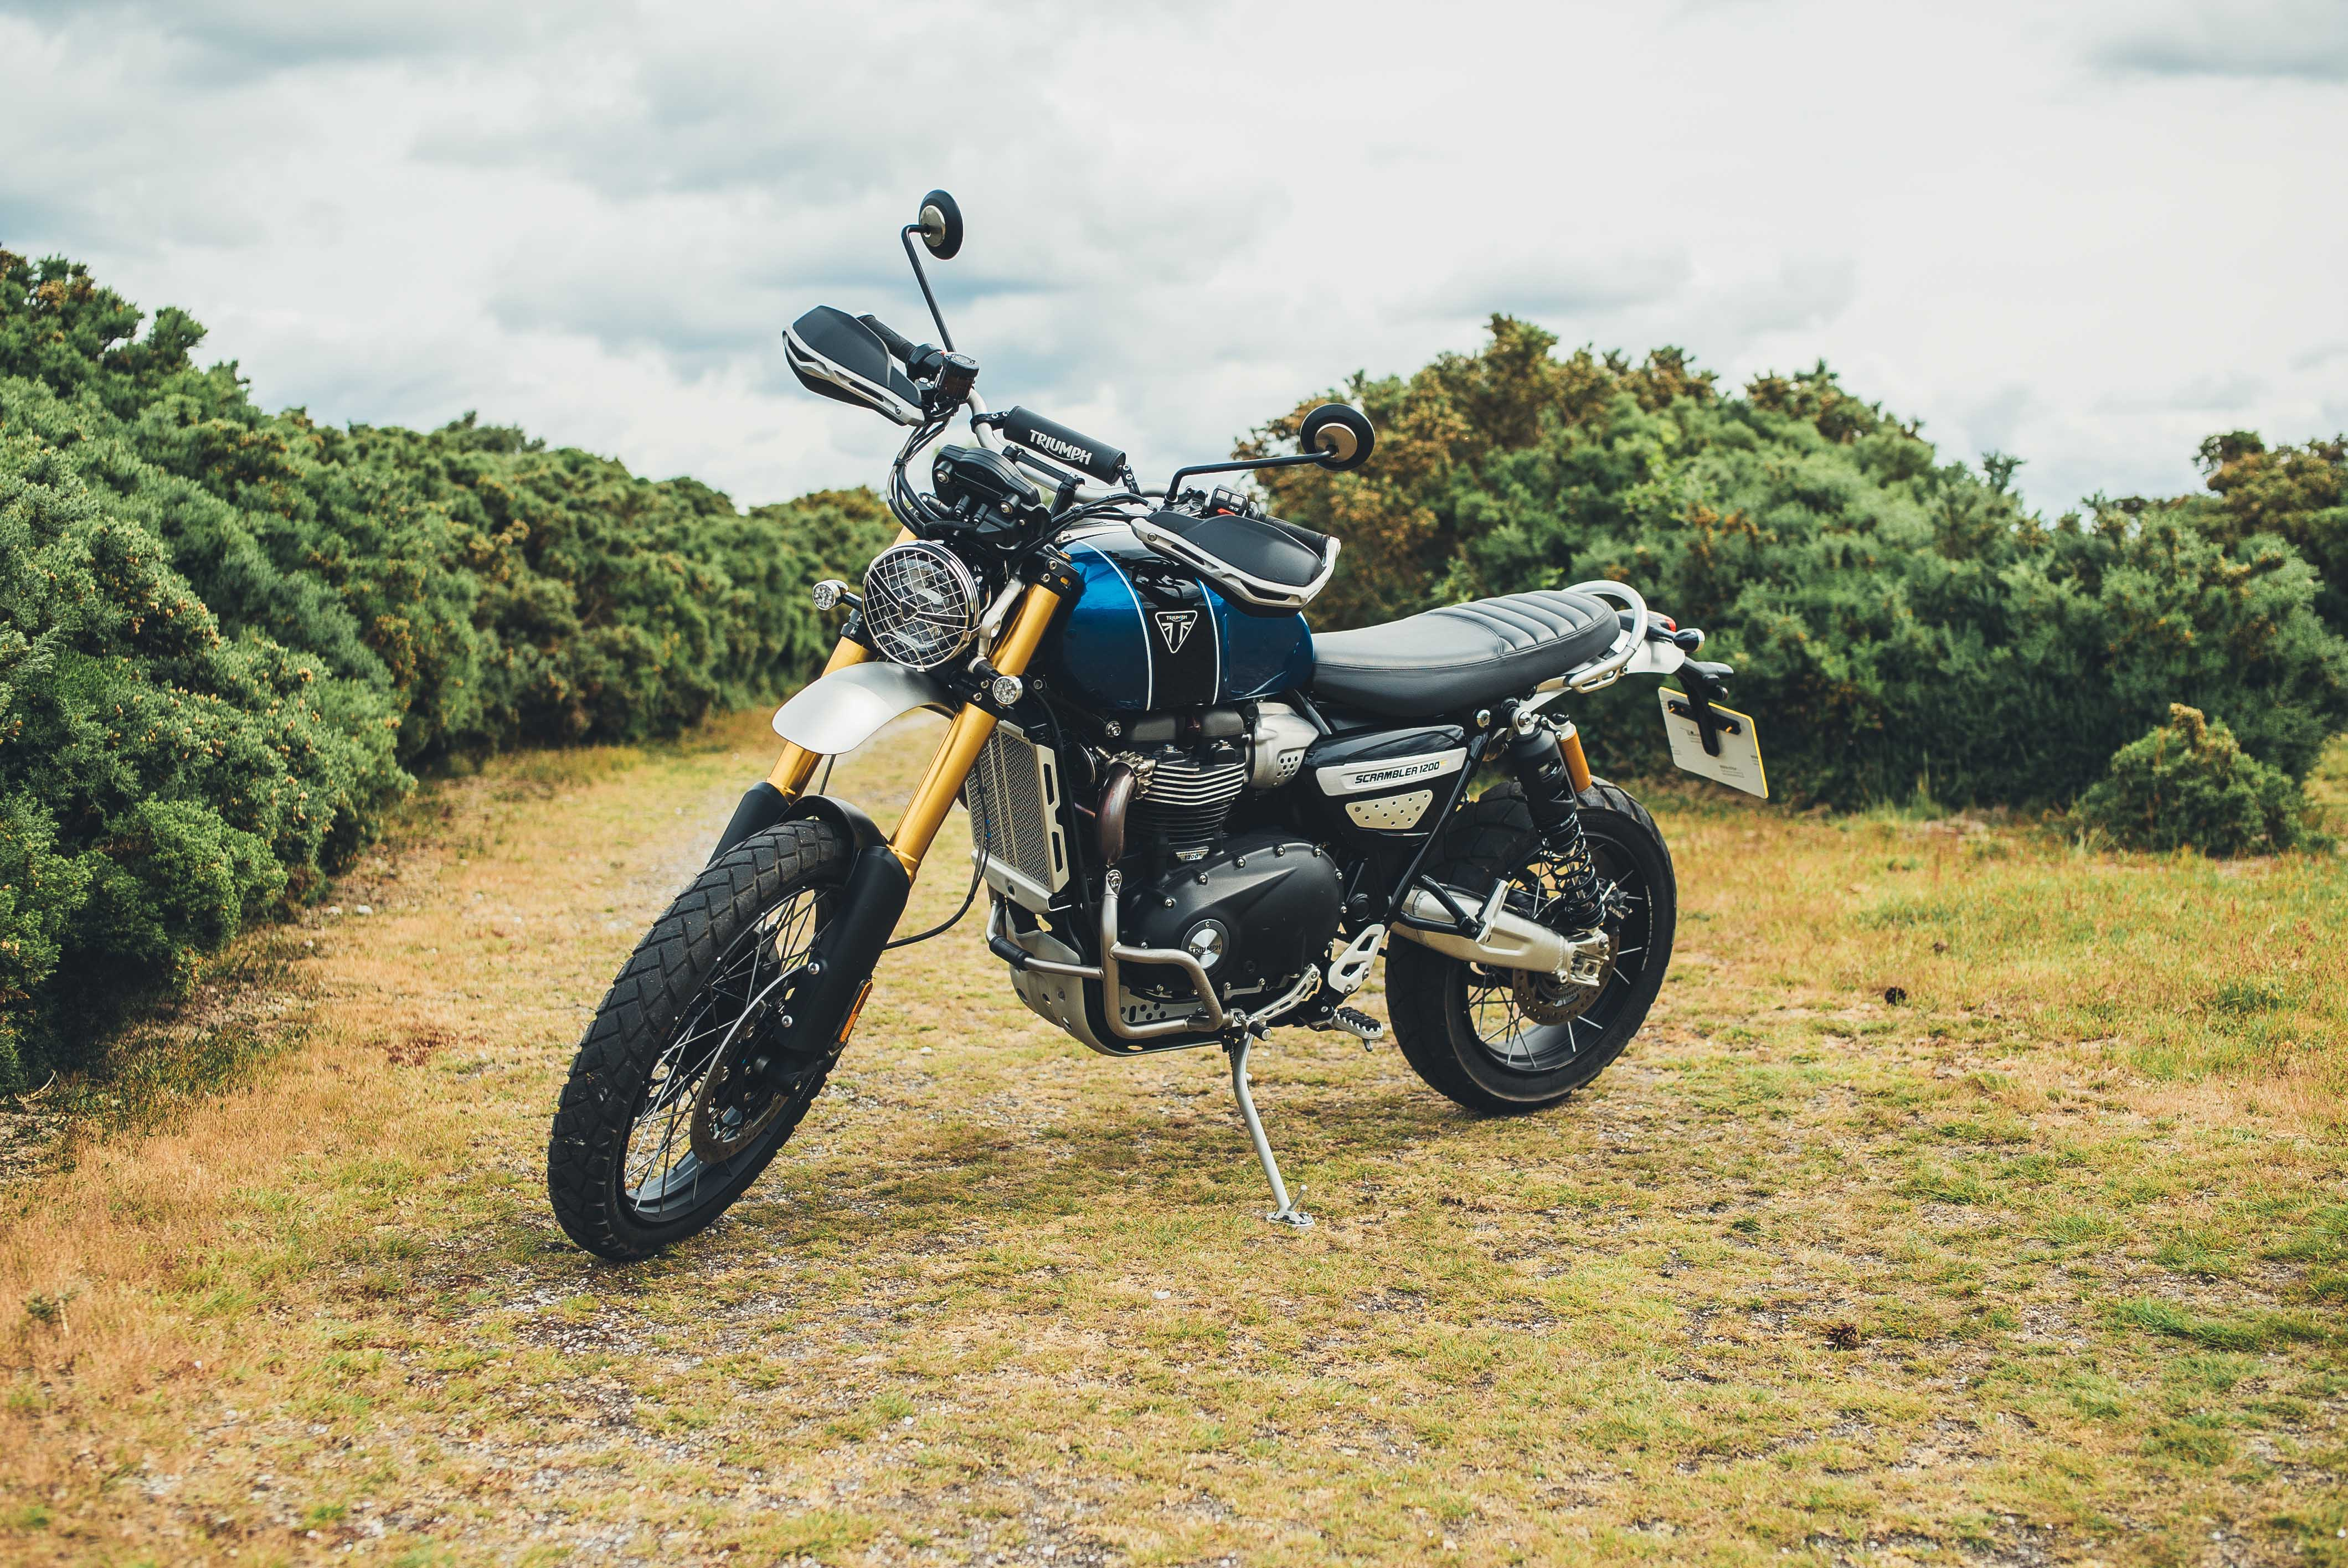 The Scrambler benefits from Ohlins forks